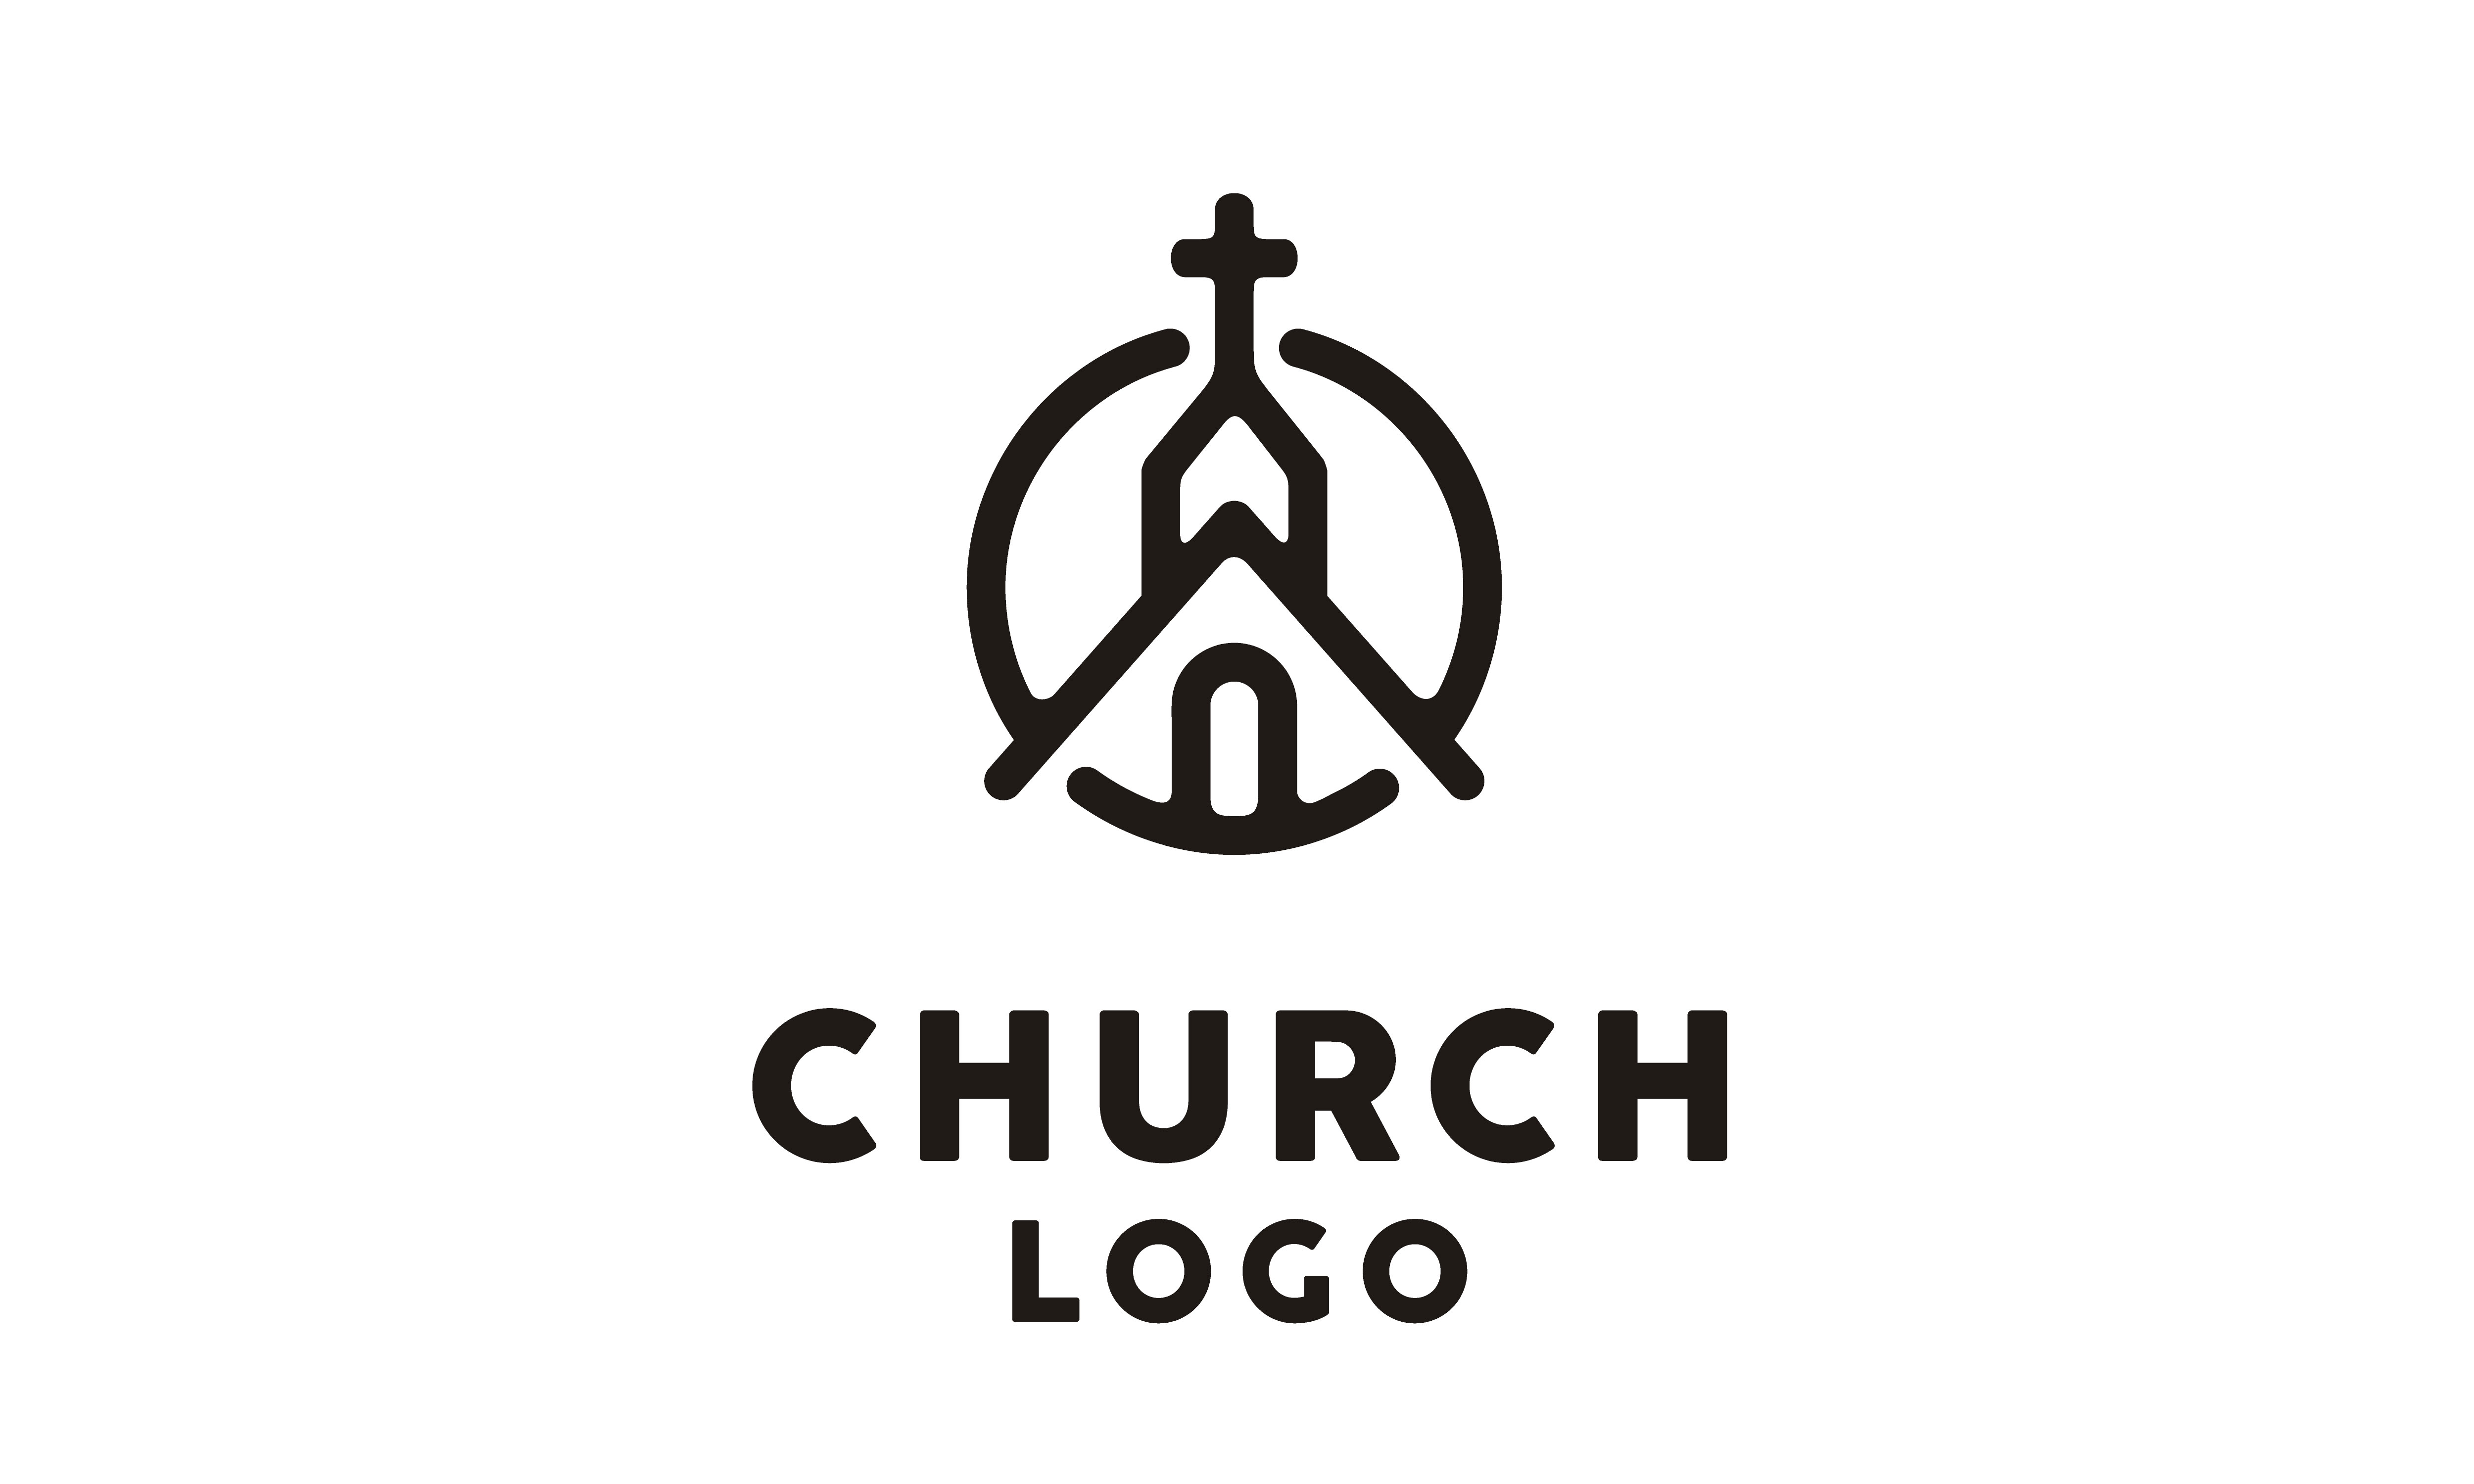 Download Free Church Building Catholic Christian Cross Graphic By Enola99d for Cricut Explore, Silhouette and other cutting machines.